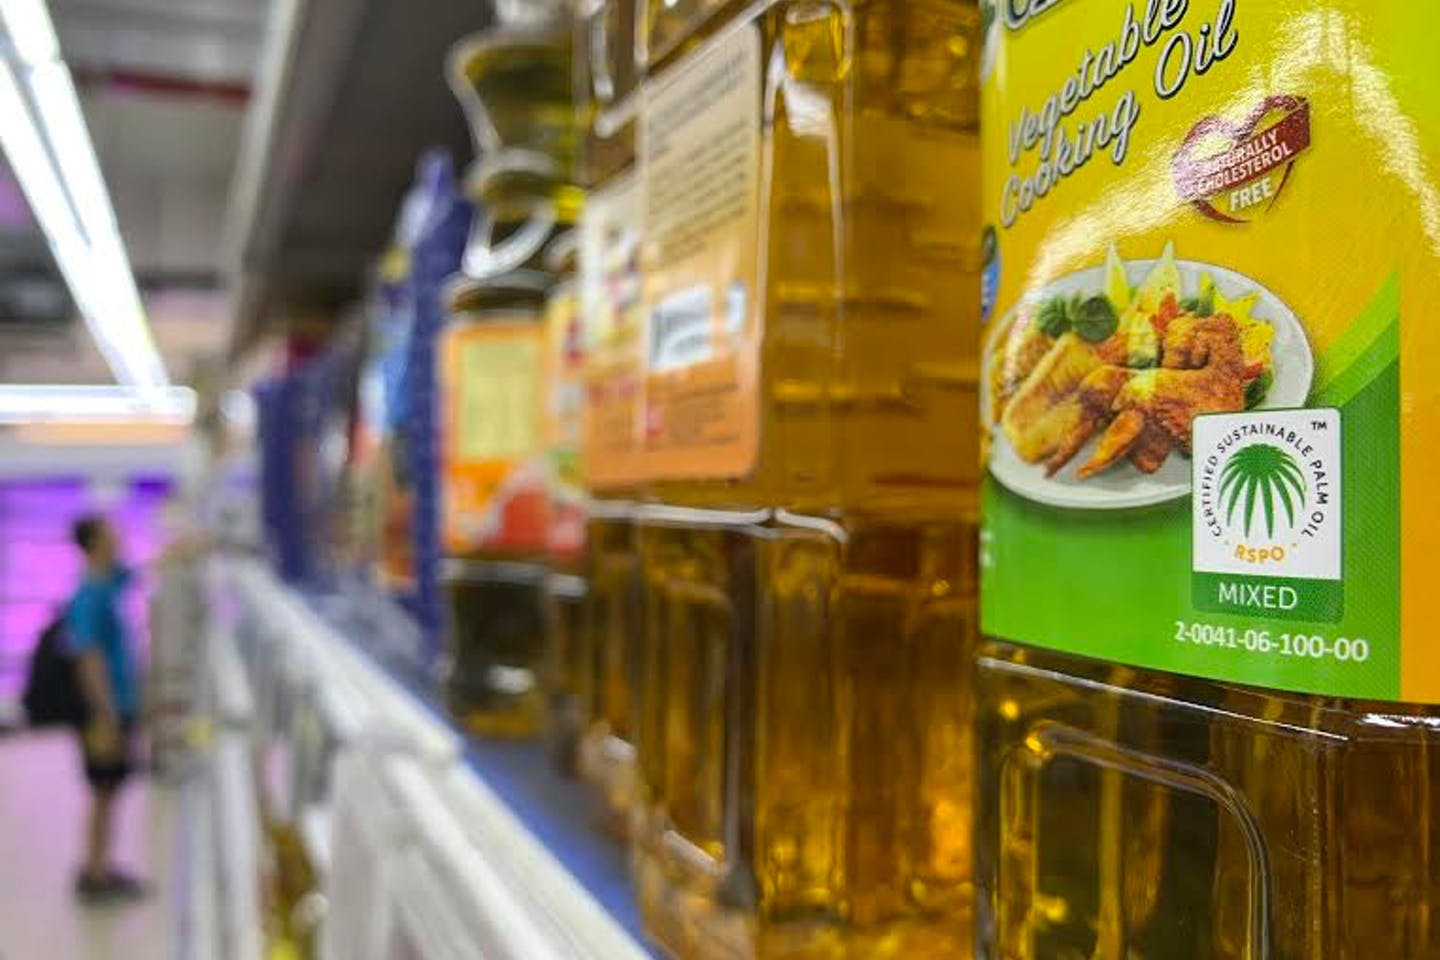 The RSPO logo on Cabbage brand vegetable oil in NTUC Fairprice supermarket in Singapore.